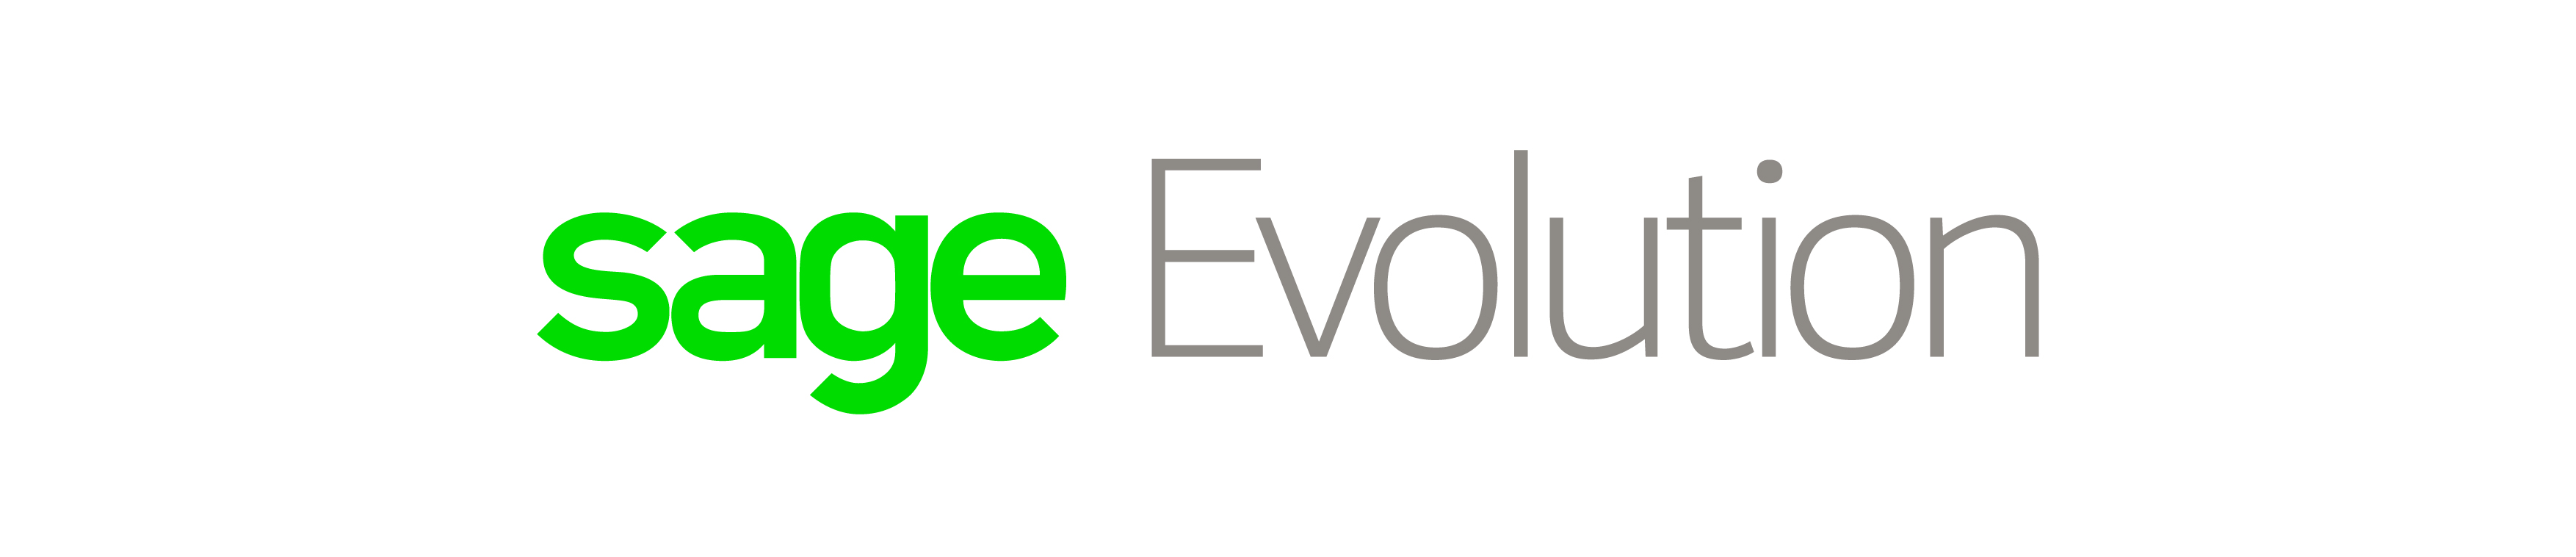 Evo 2017 Logo >> Sage Evolution – Corporate Computing